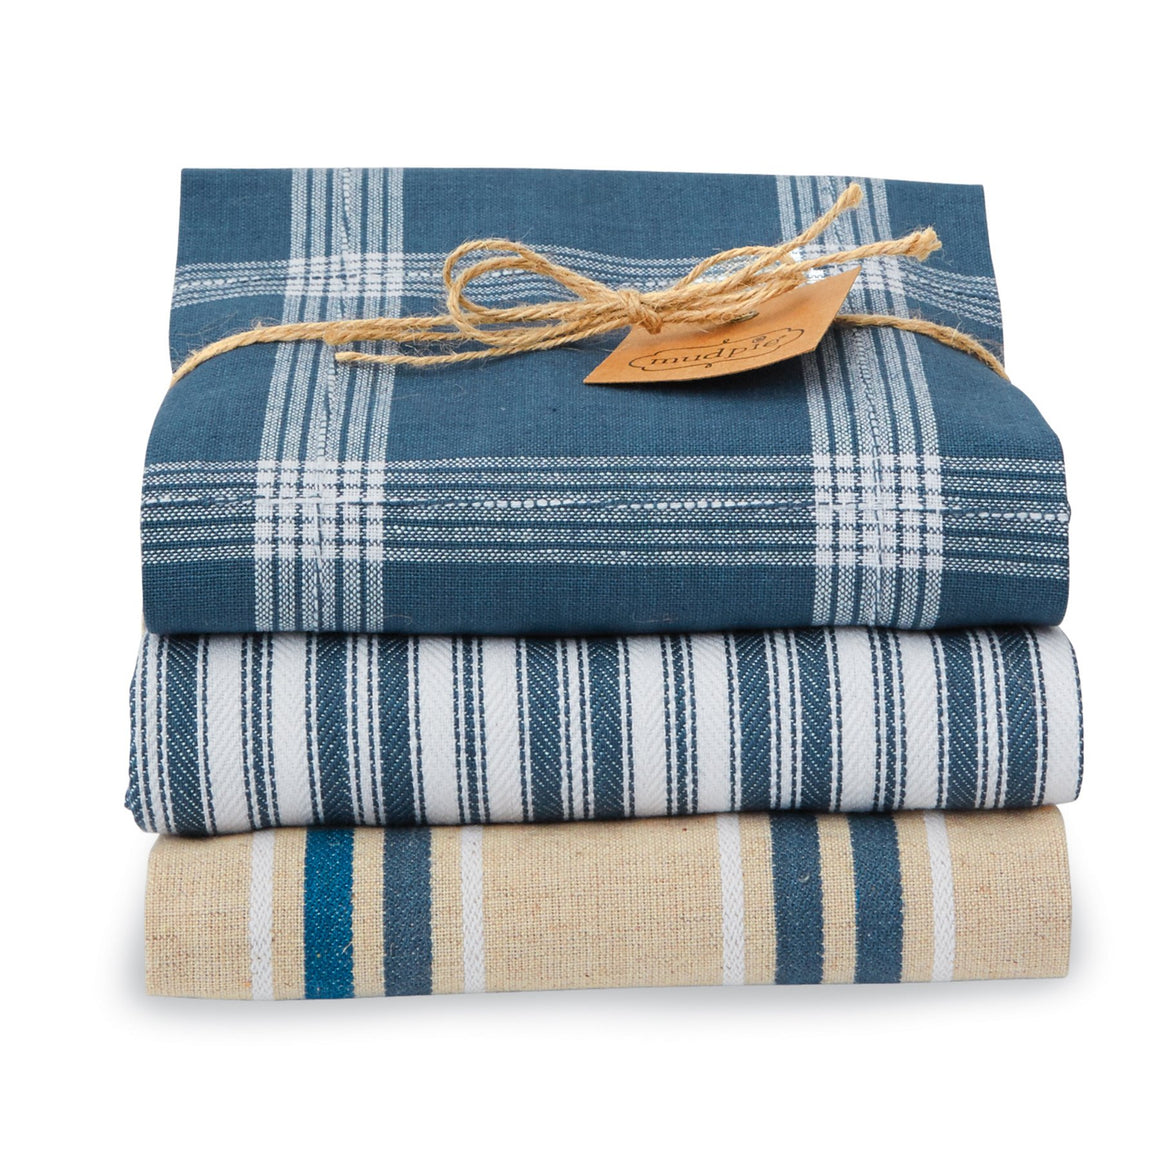 Blue Striped Dish Towel Set